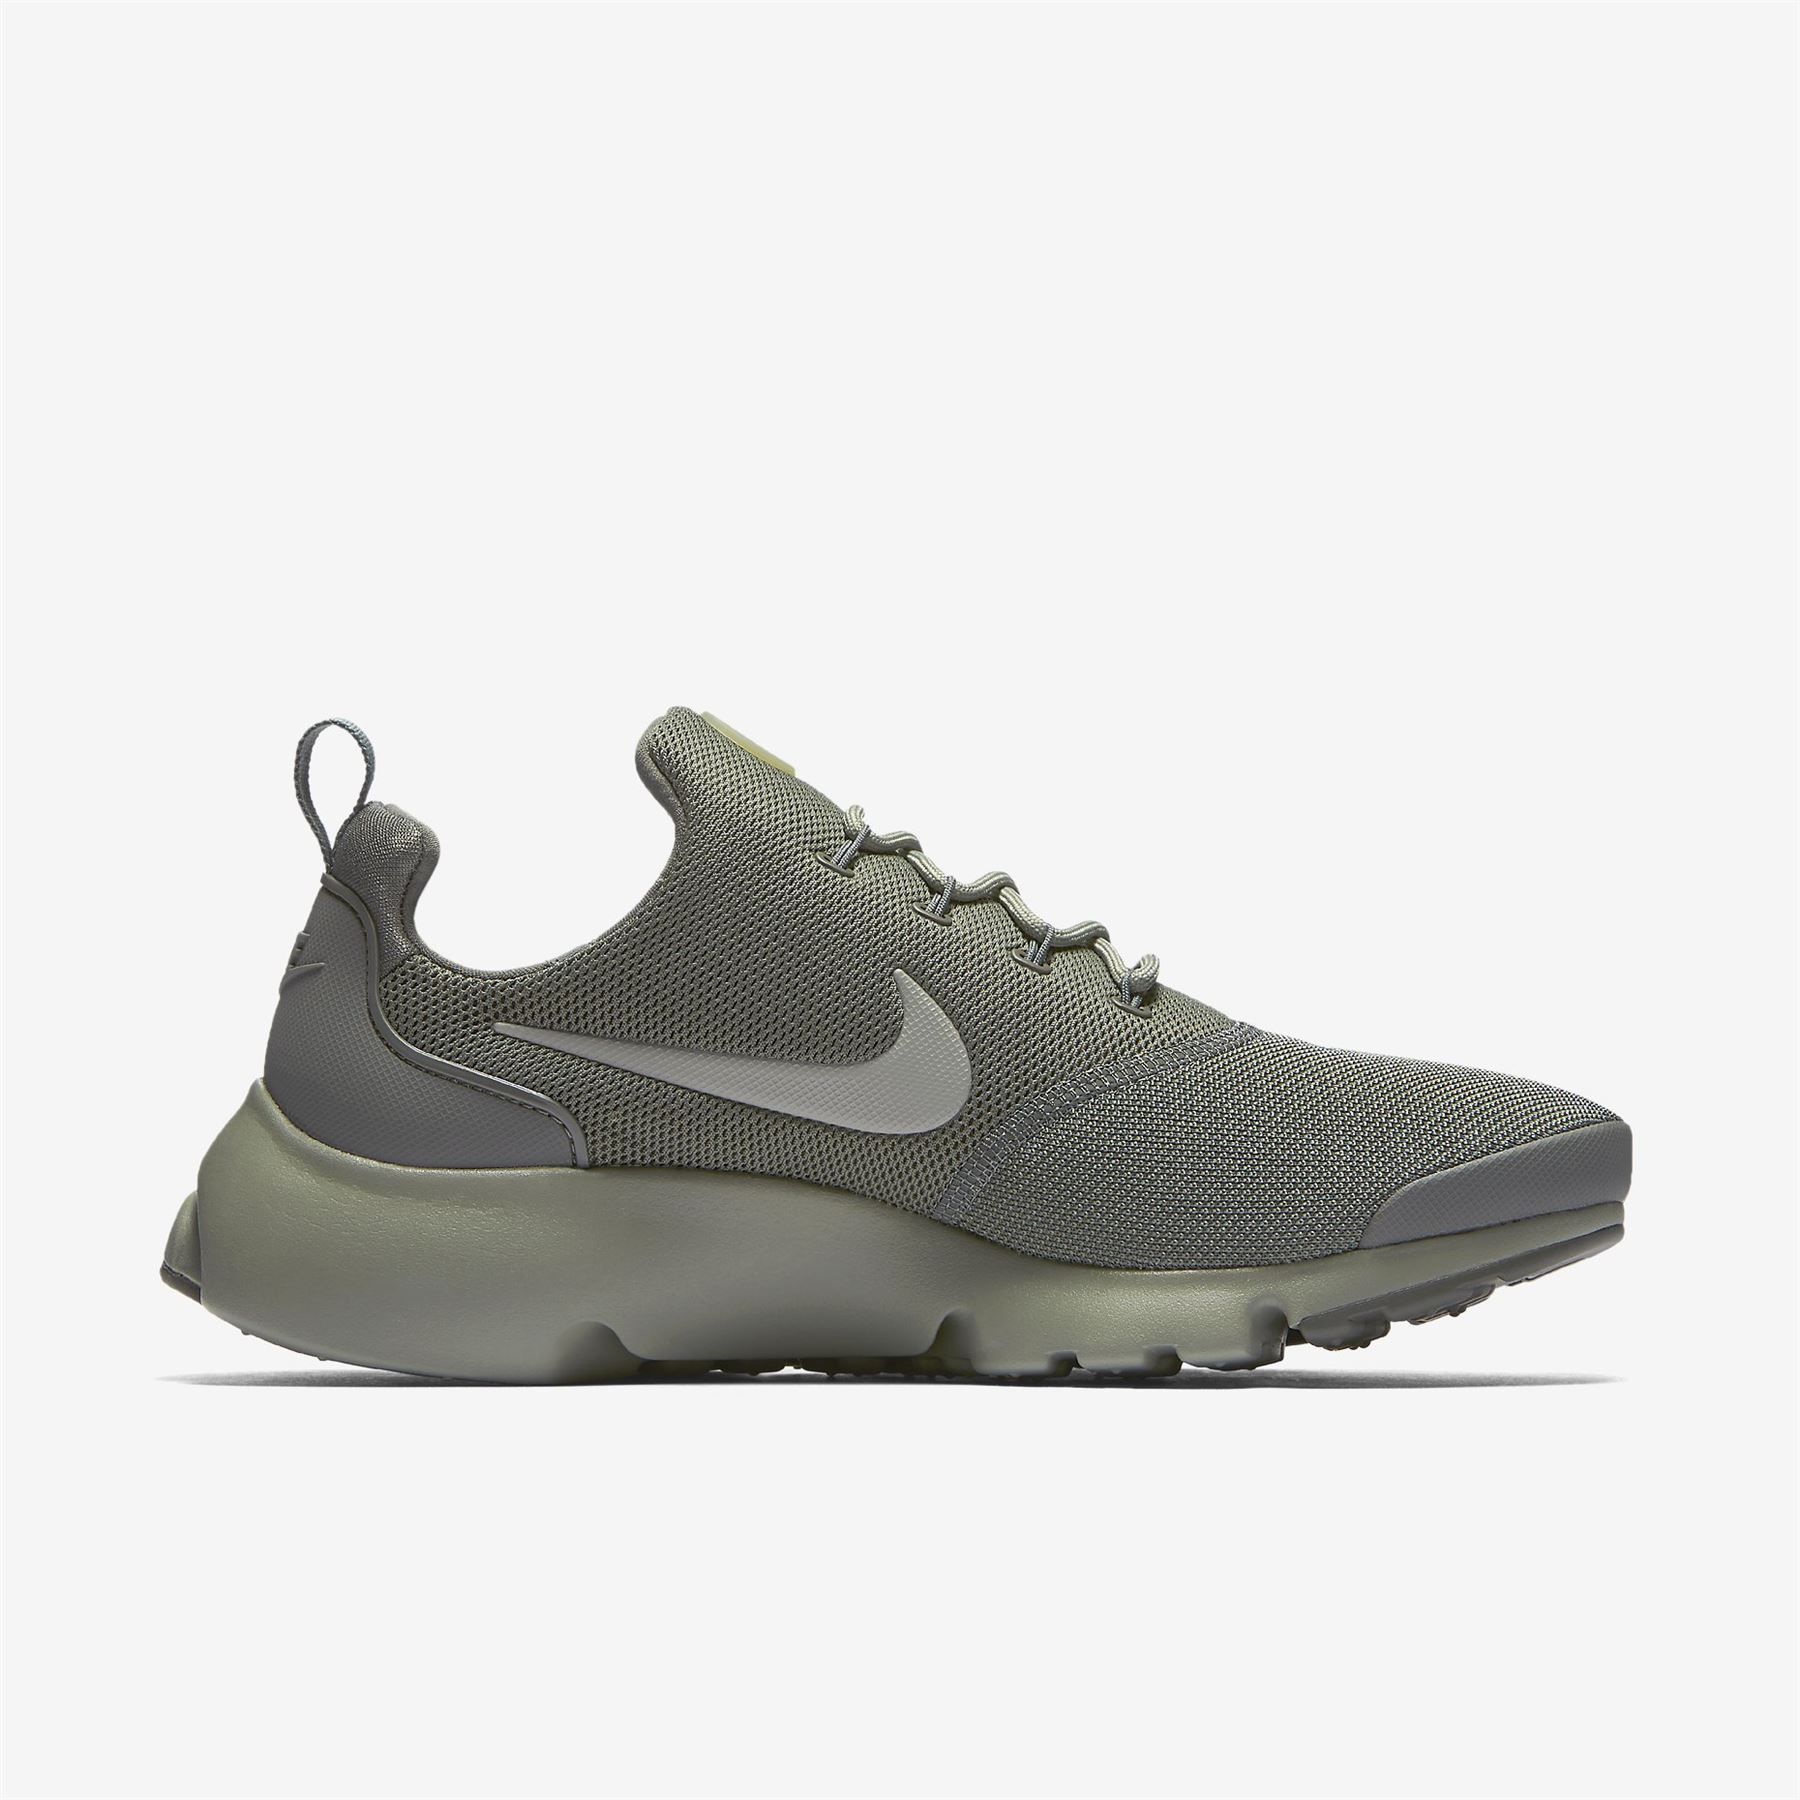 NIKE PRESTO FLY 908019 009 GREY MEN'S UK 6-11